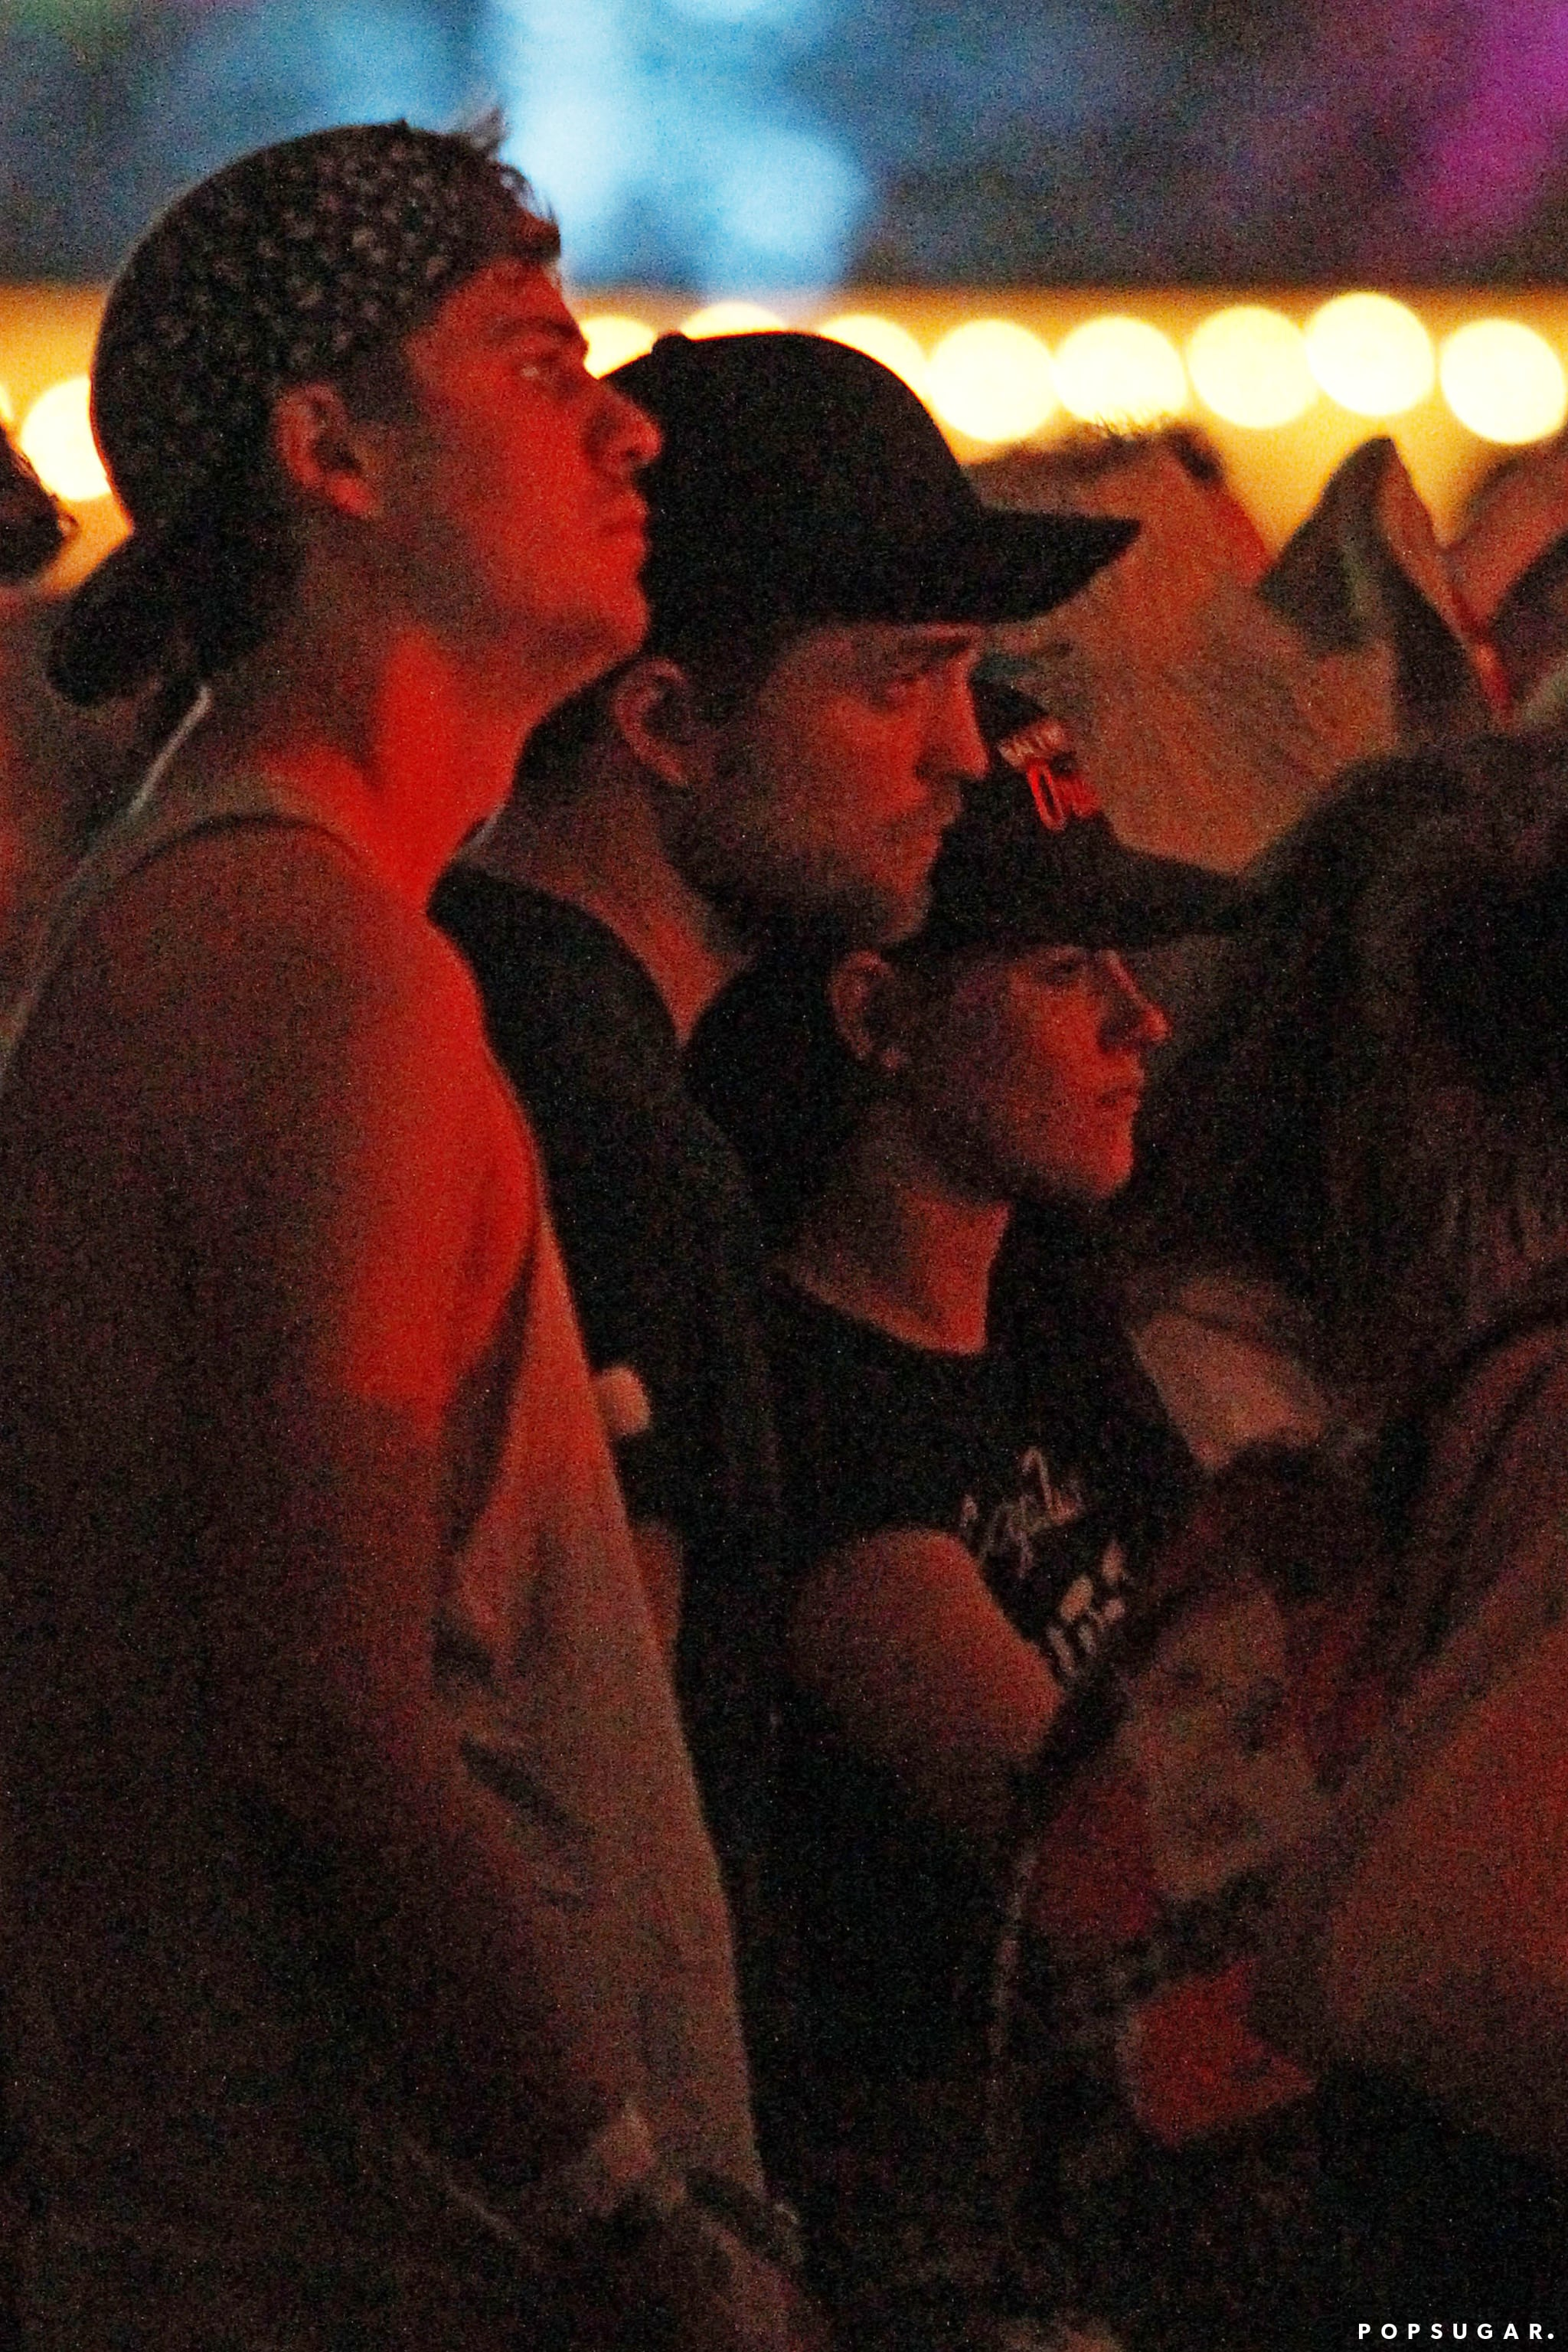 Kristen Stewart and Robert Pattinson camped out on the grass in 2012.